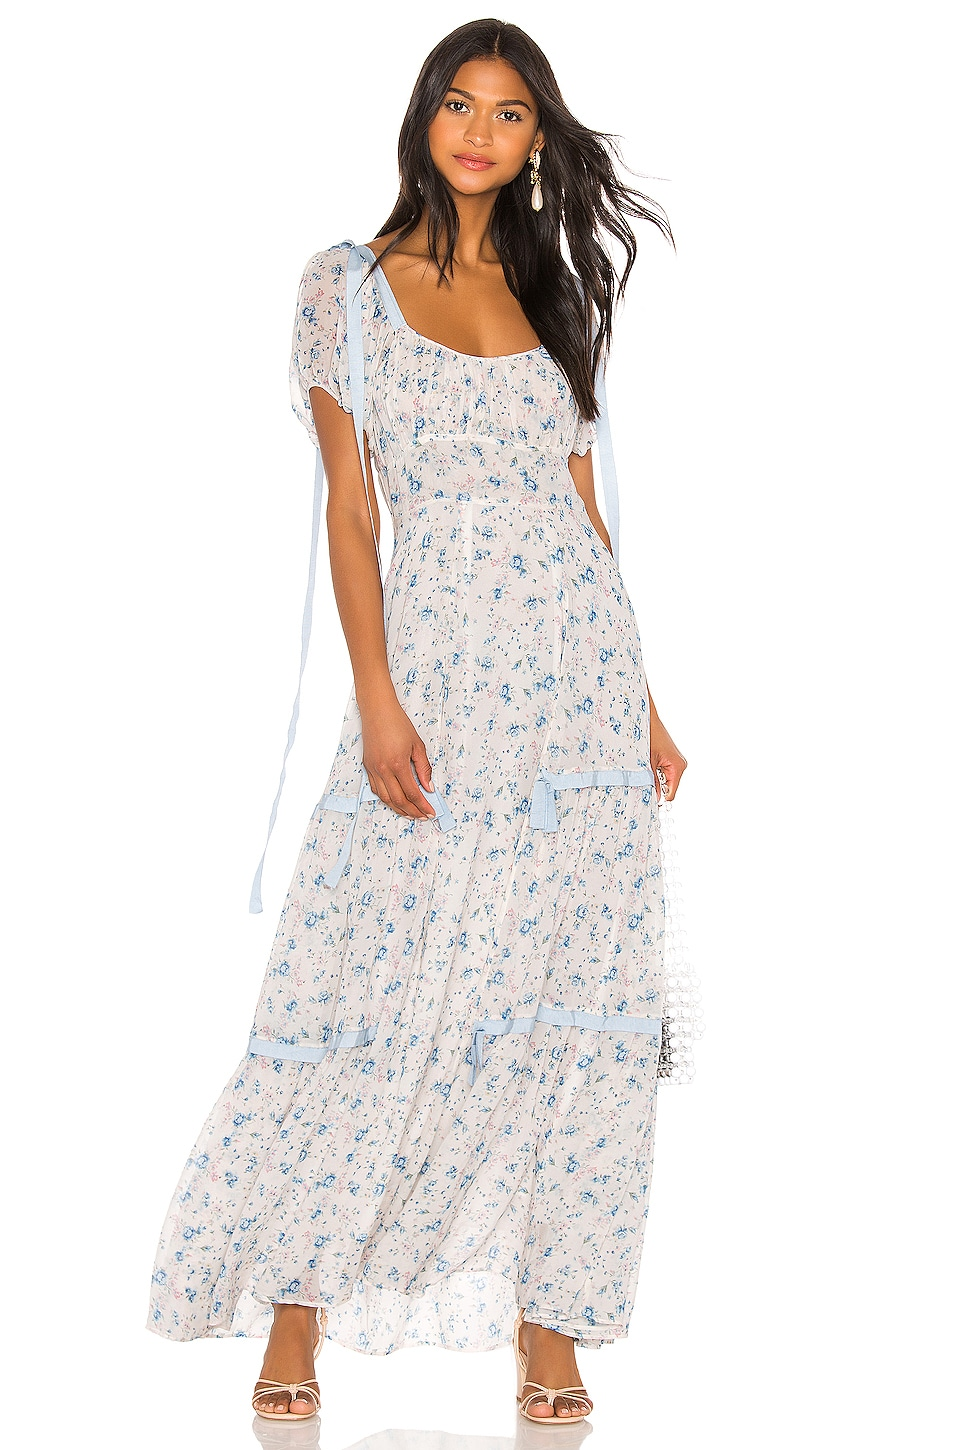 LoveShackFancy Jessie Dress in Pearl River